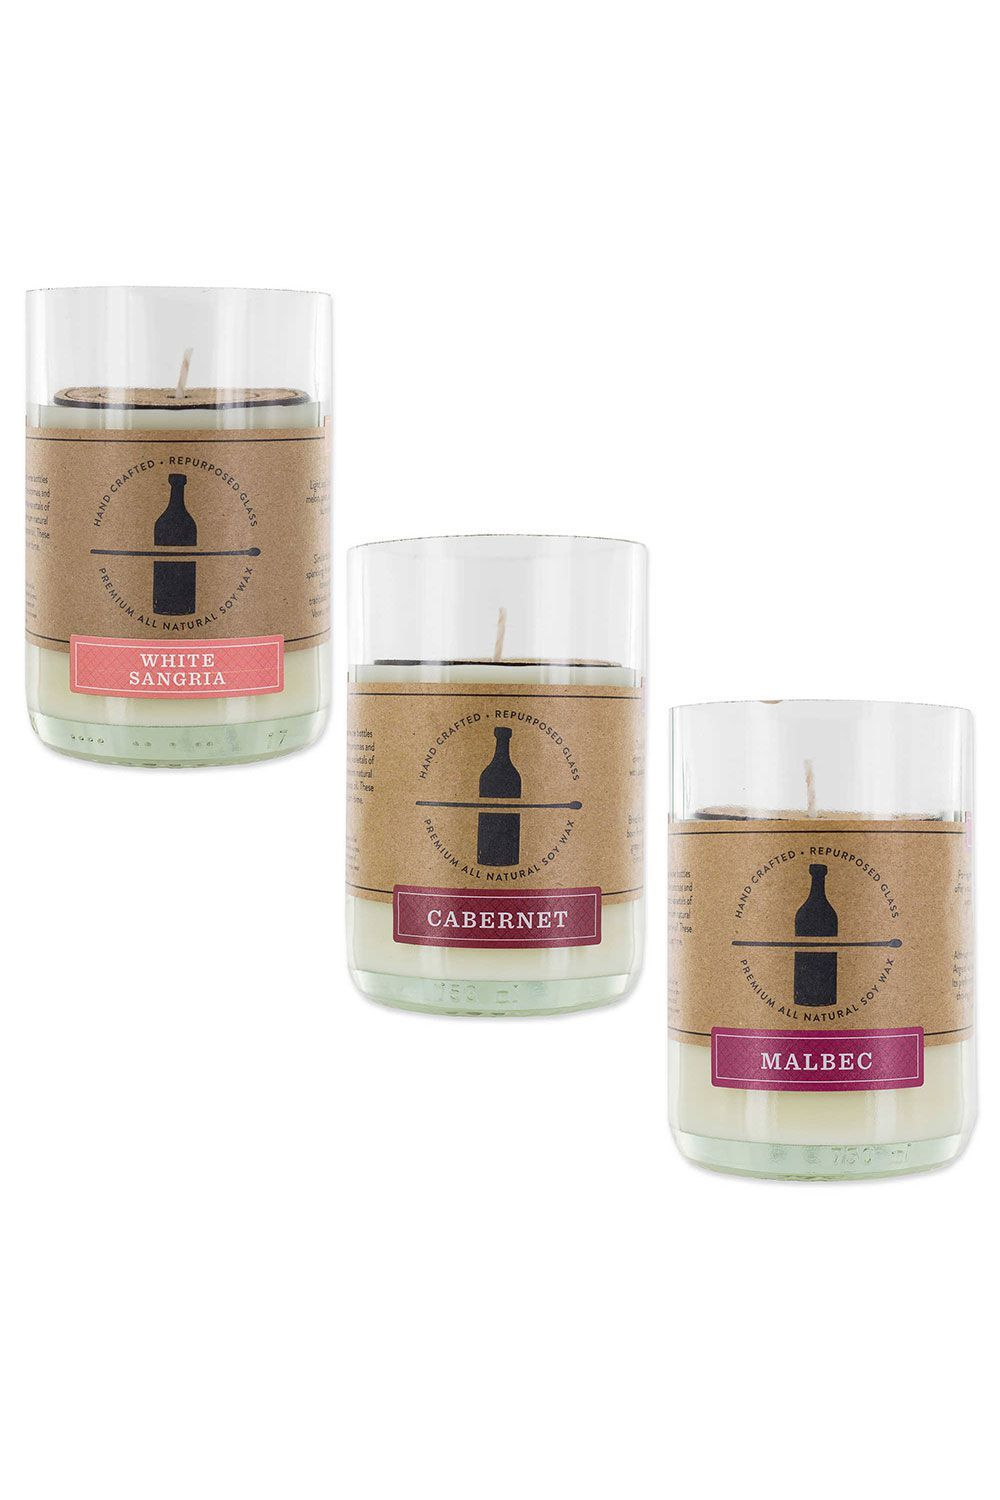 Wine Scented Soy Wax Candle Collection